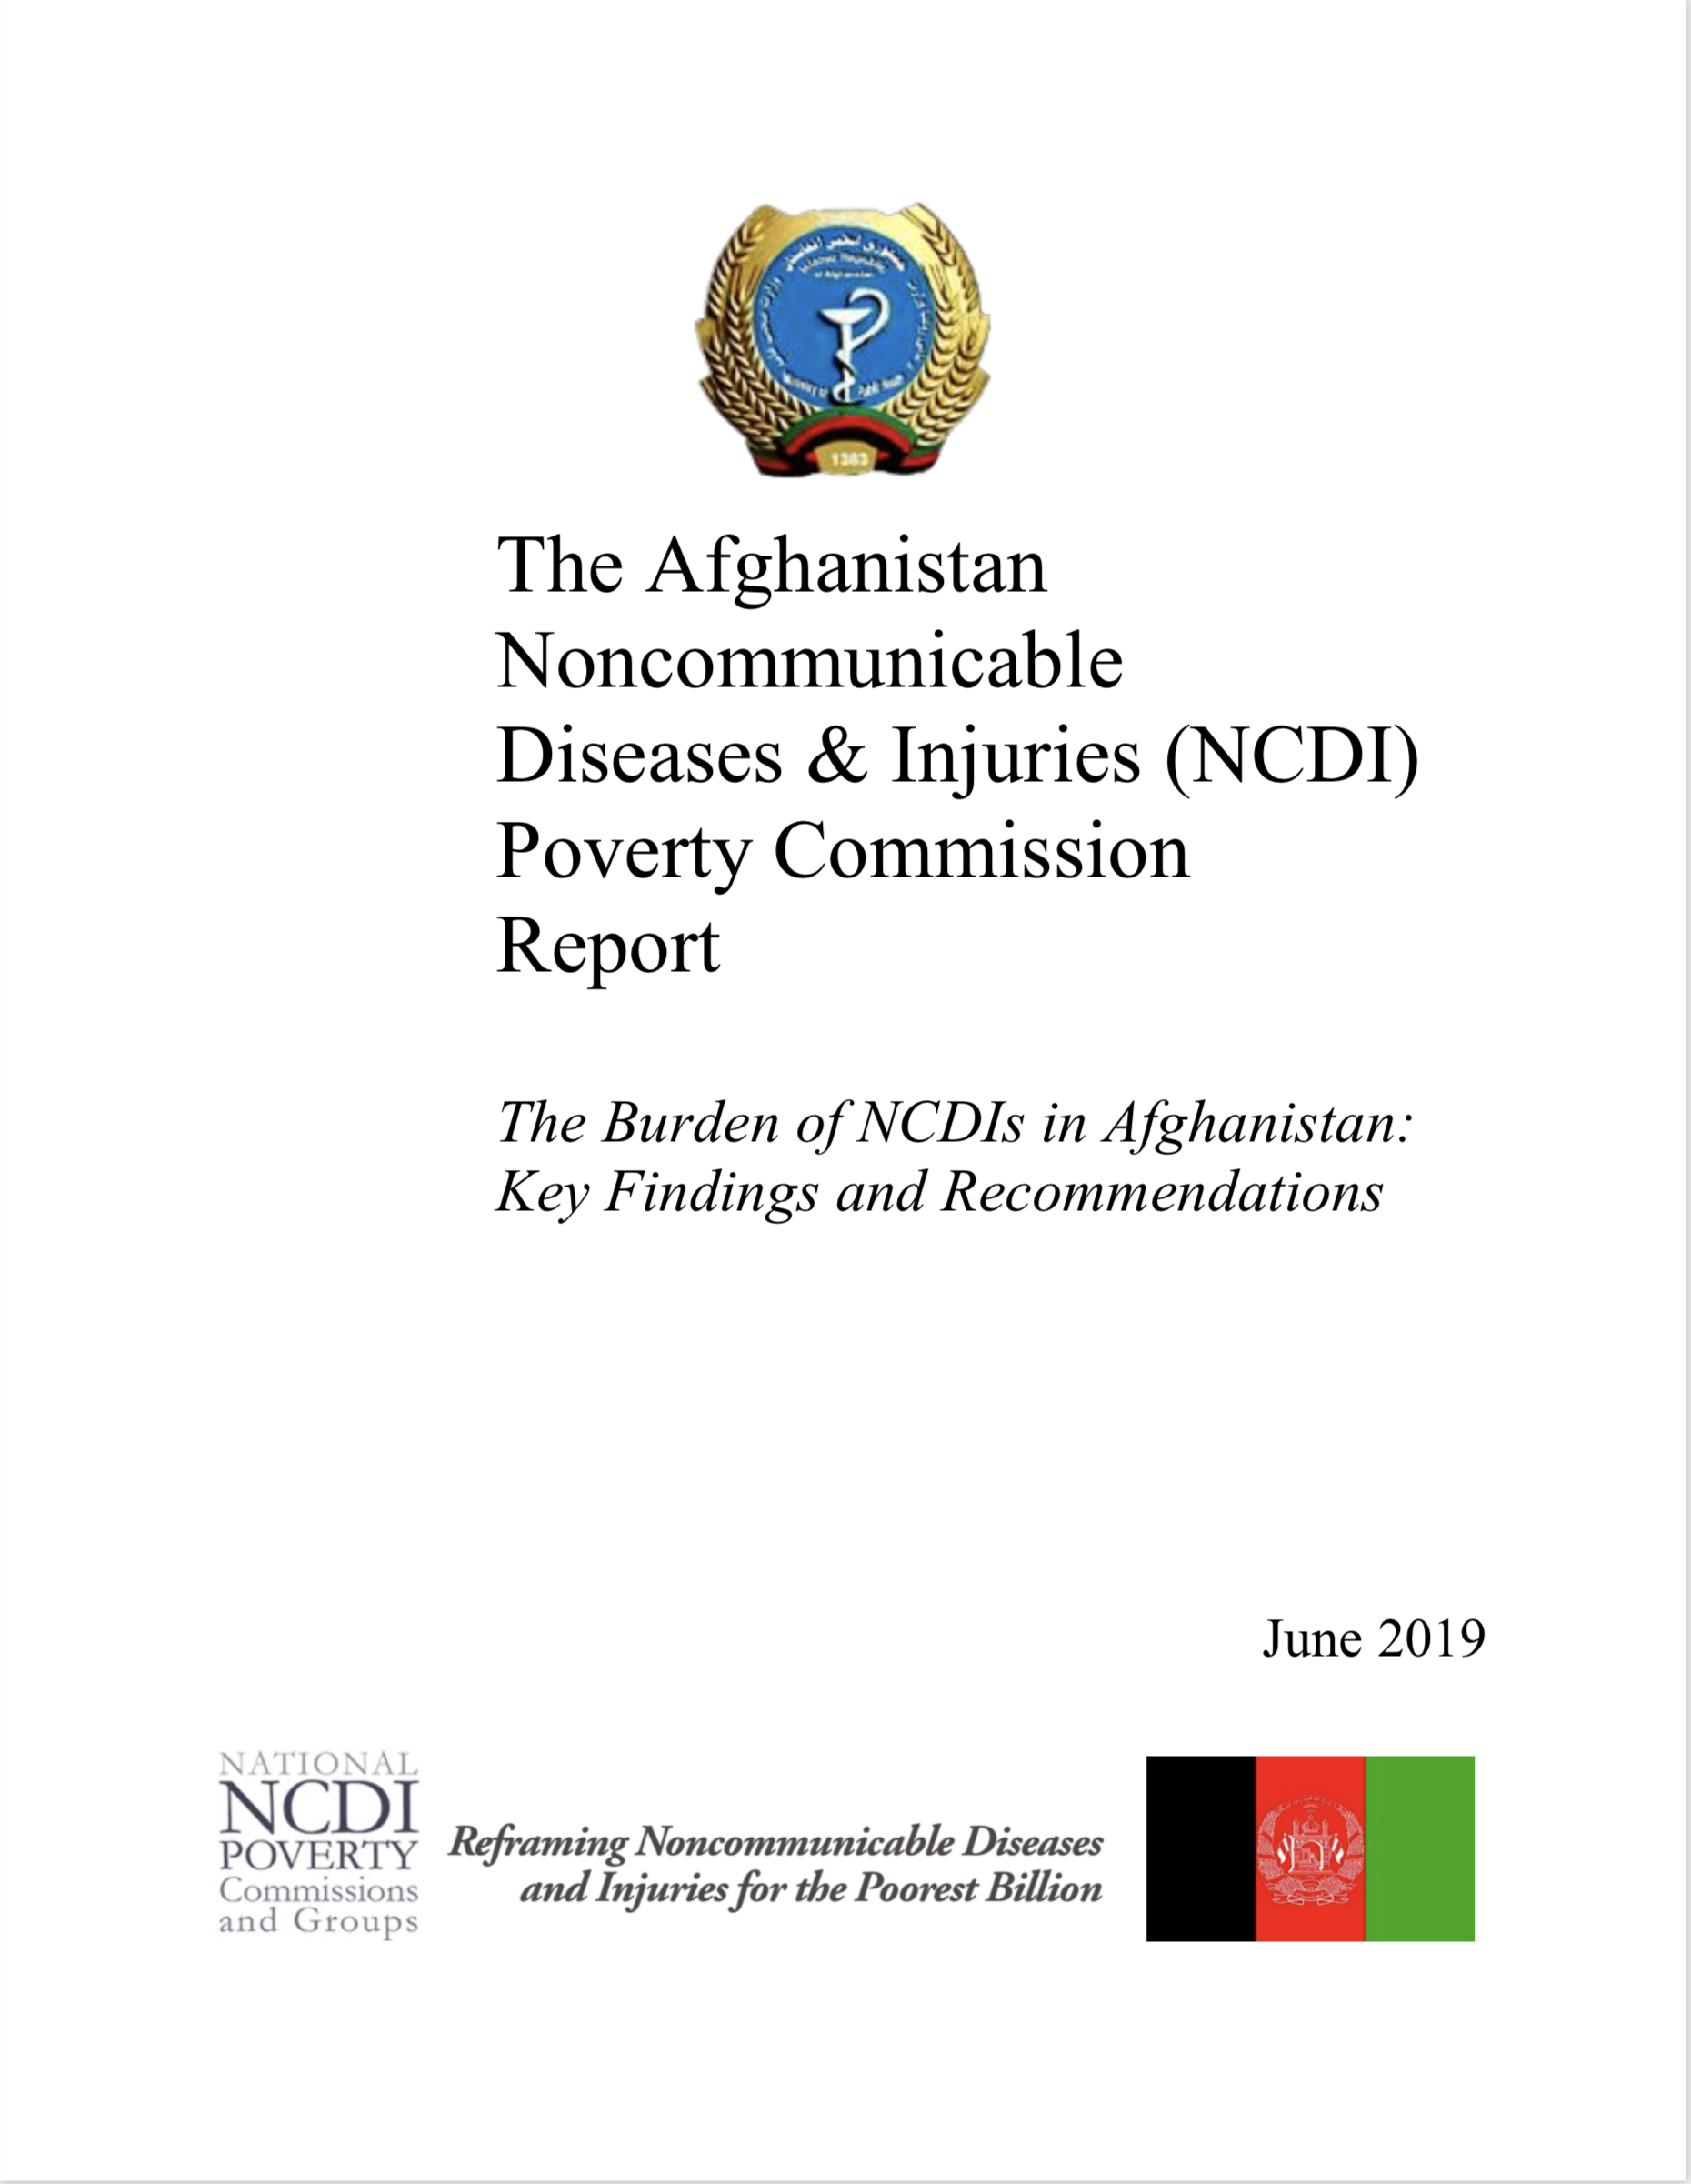 Afghanistan NCDI Poverty Commission Report